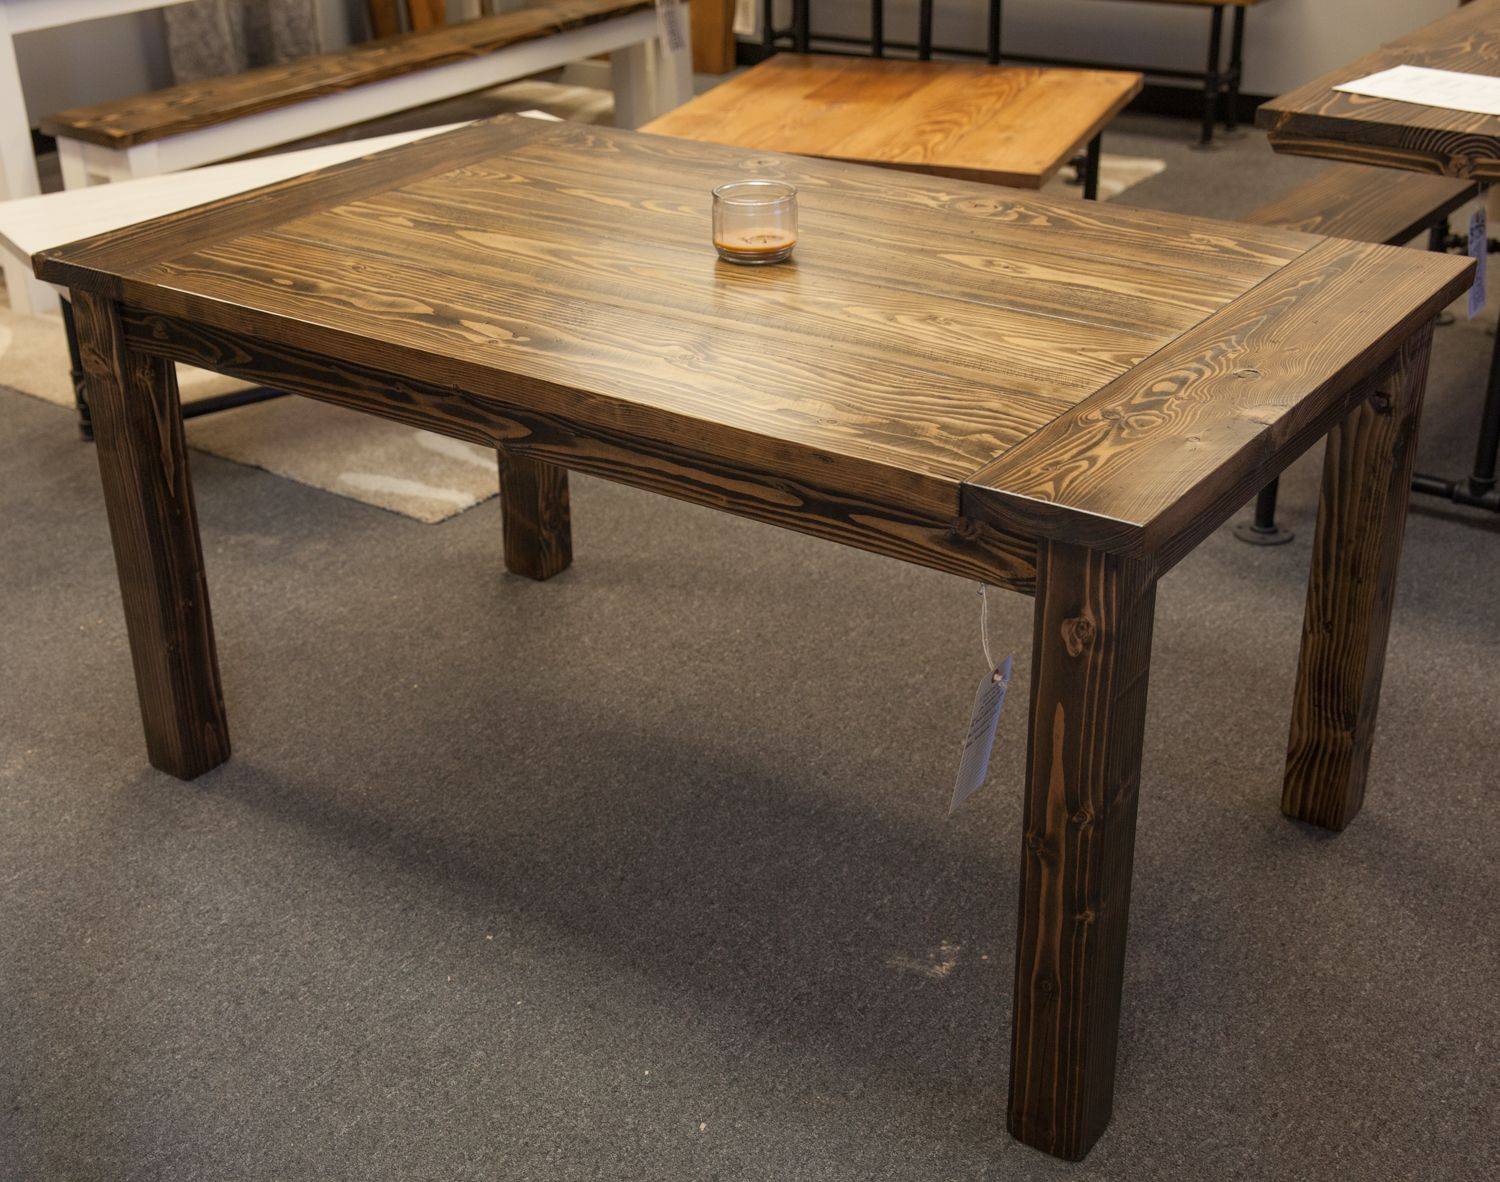 rustic kitchen tables Solid wood farmhouse table with breadboards Distressed dark walnut top Kitchen table Dining